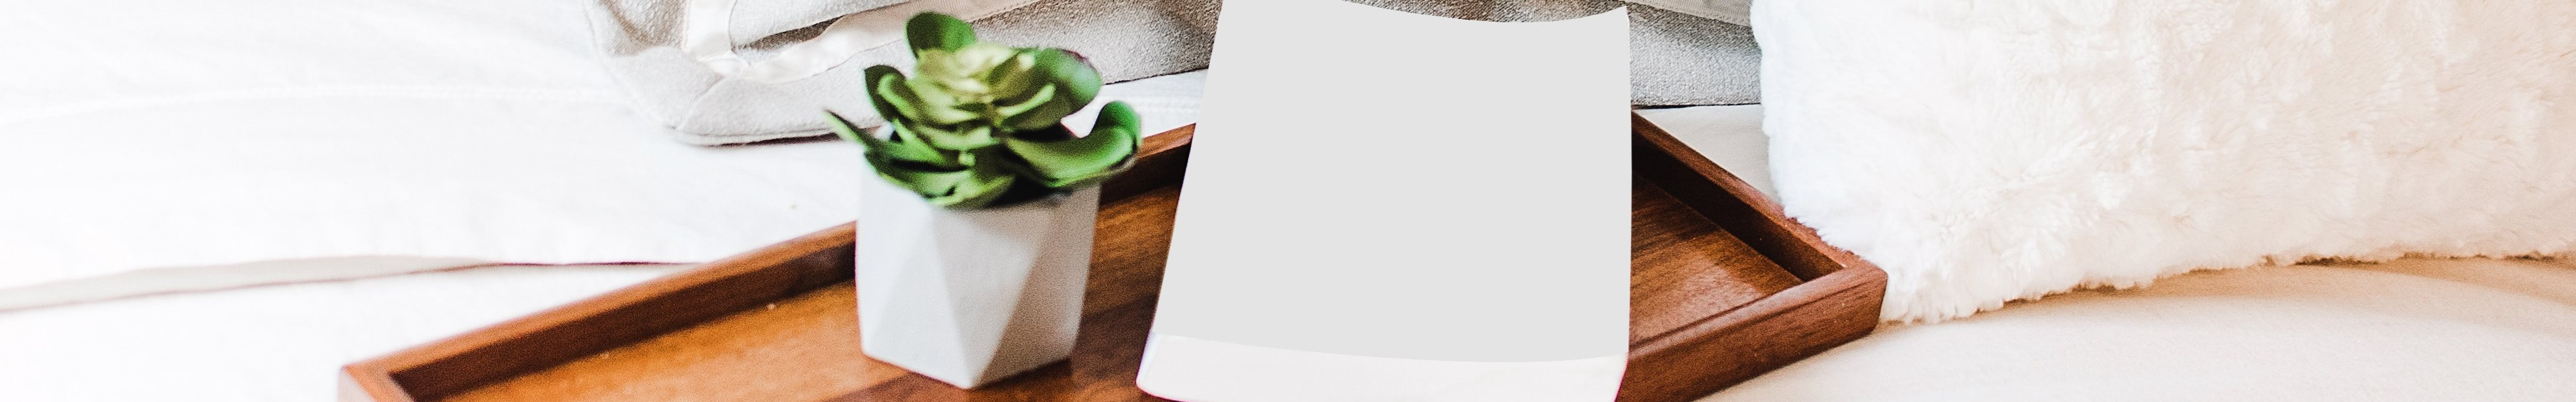 Stock Image of Wooden Serving Tray with Small Succulent in Planter Next to Book on Bed with White Sheets and Grey and White Pillows